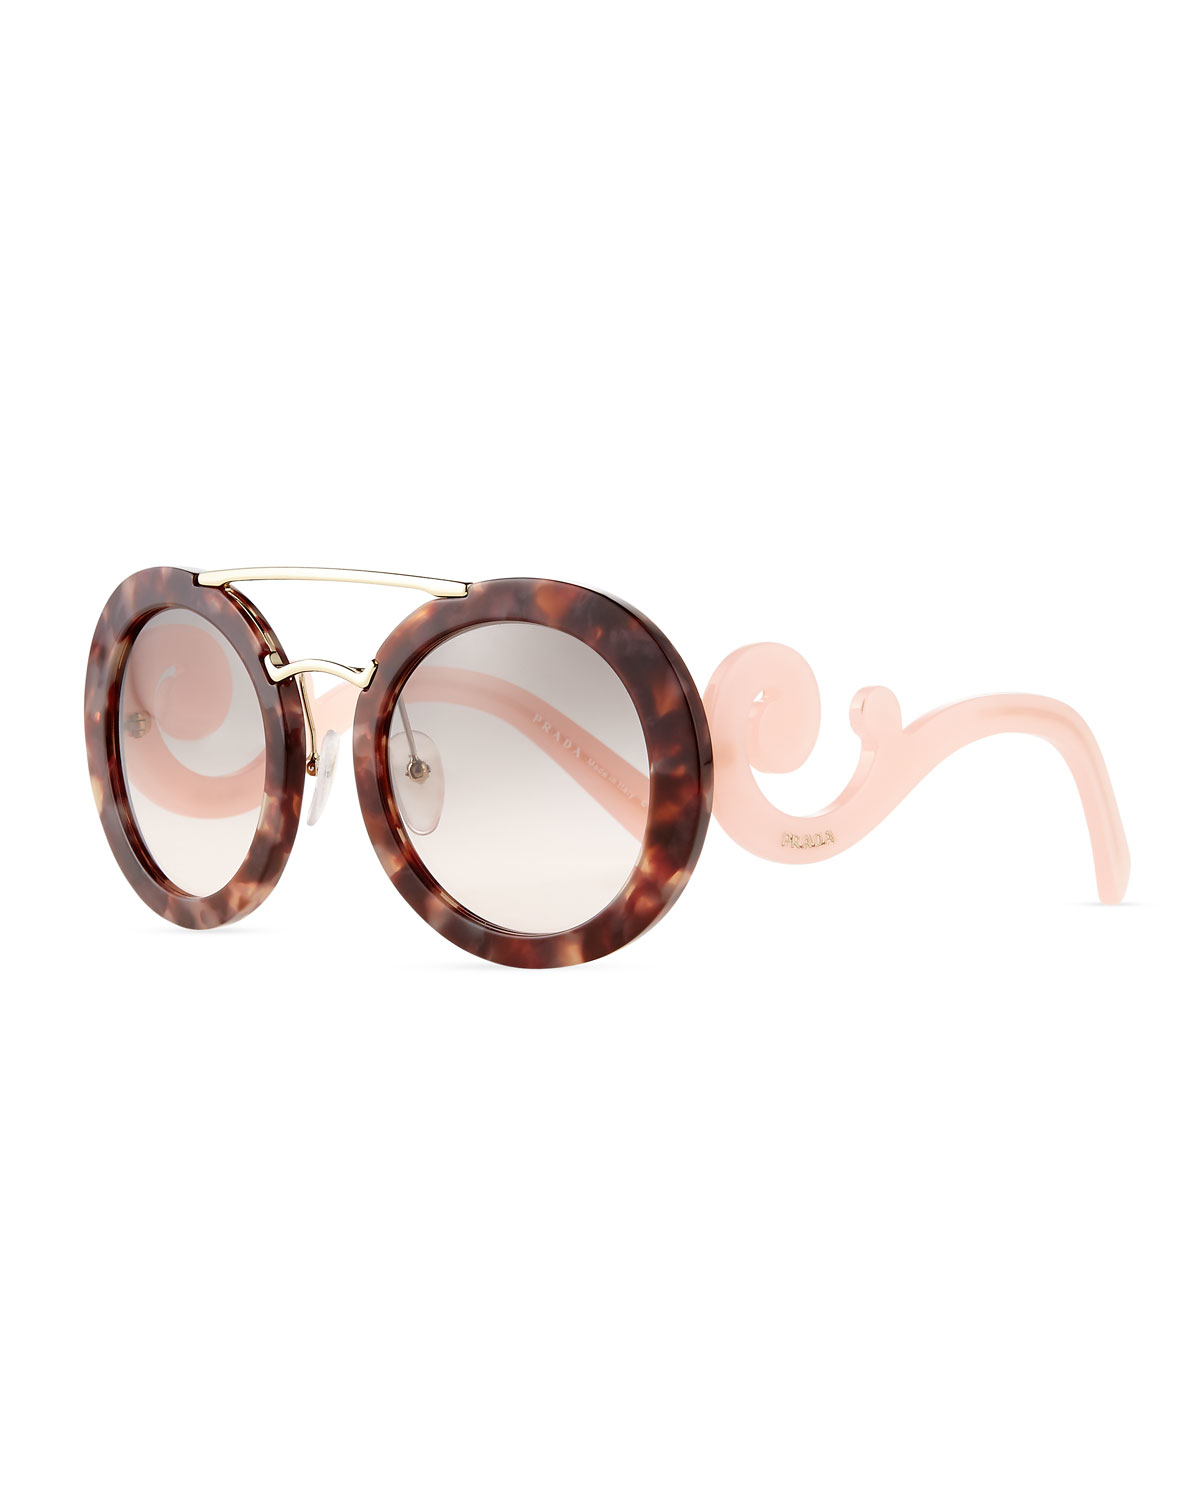 8bf450a9ab Lyst - Prada Baroque Round Brow-bar Sunglasses in Pink